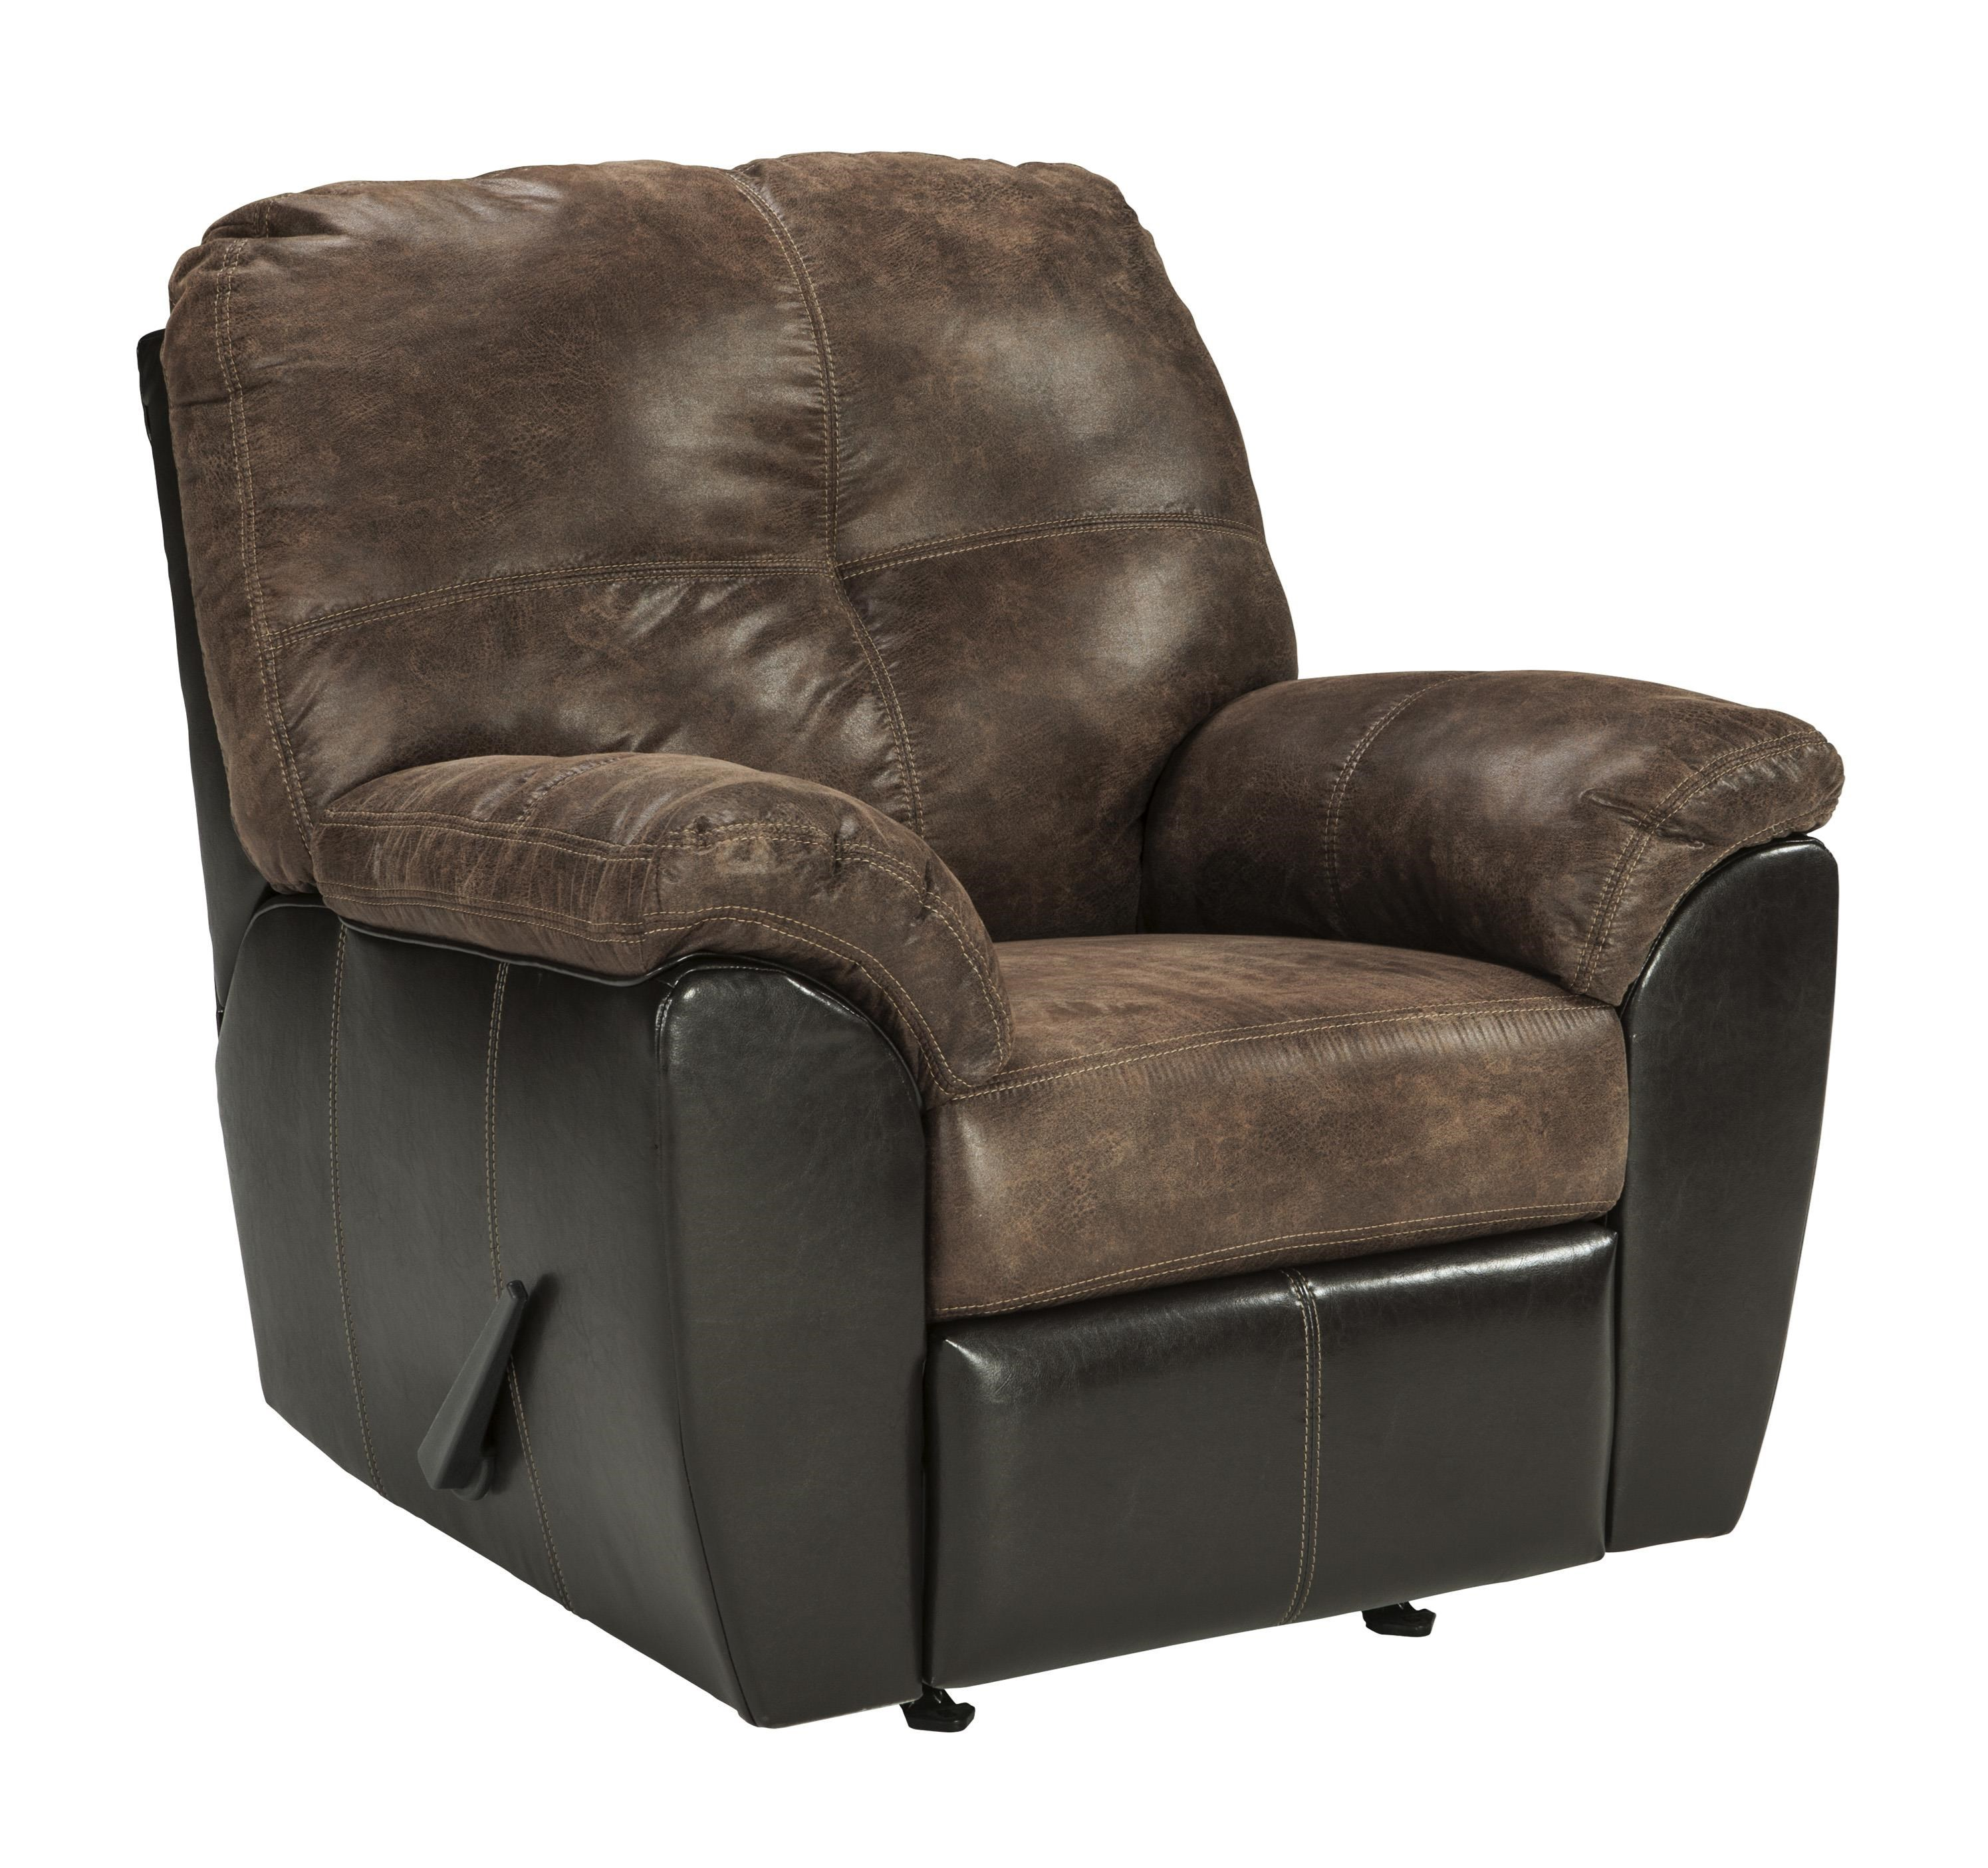 Gregale - 2 Tone Contemporary Rocker Recliner by Signature Design by Ashley at Westrich Furniture & Appliances